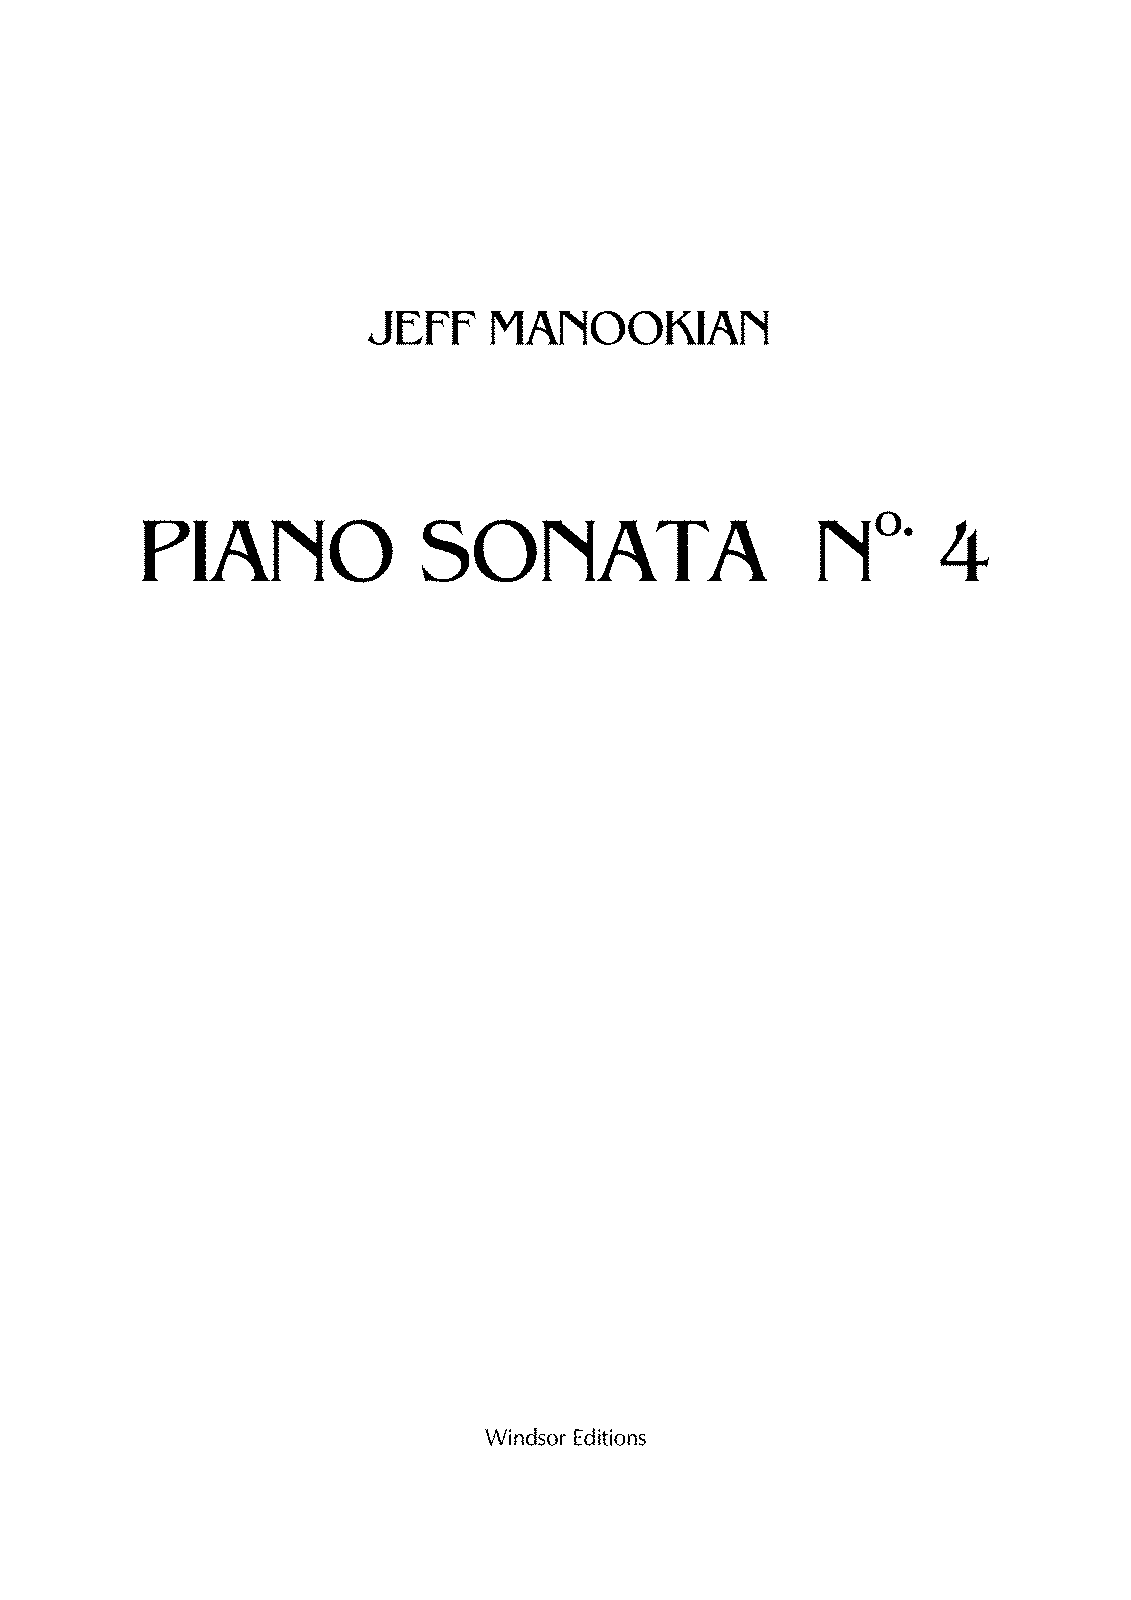 PMLP118207-PIANO SONATA No. 4 - 1st movement.pdf